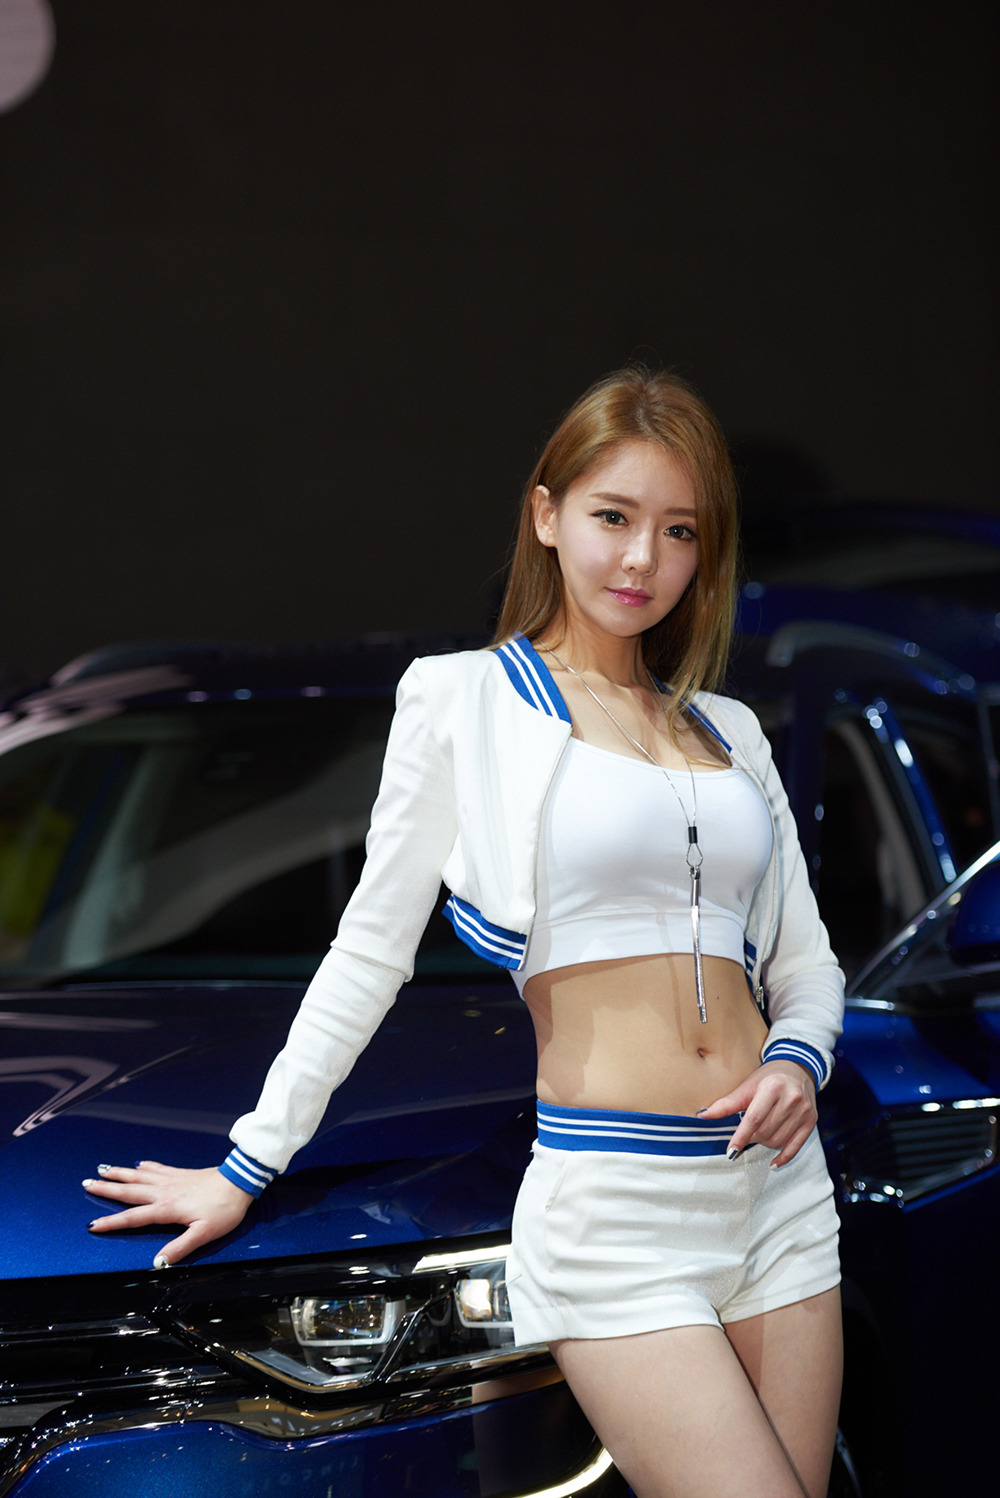 Renault Samsung Model - 유진